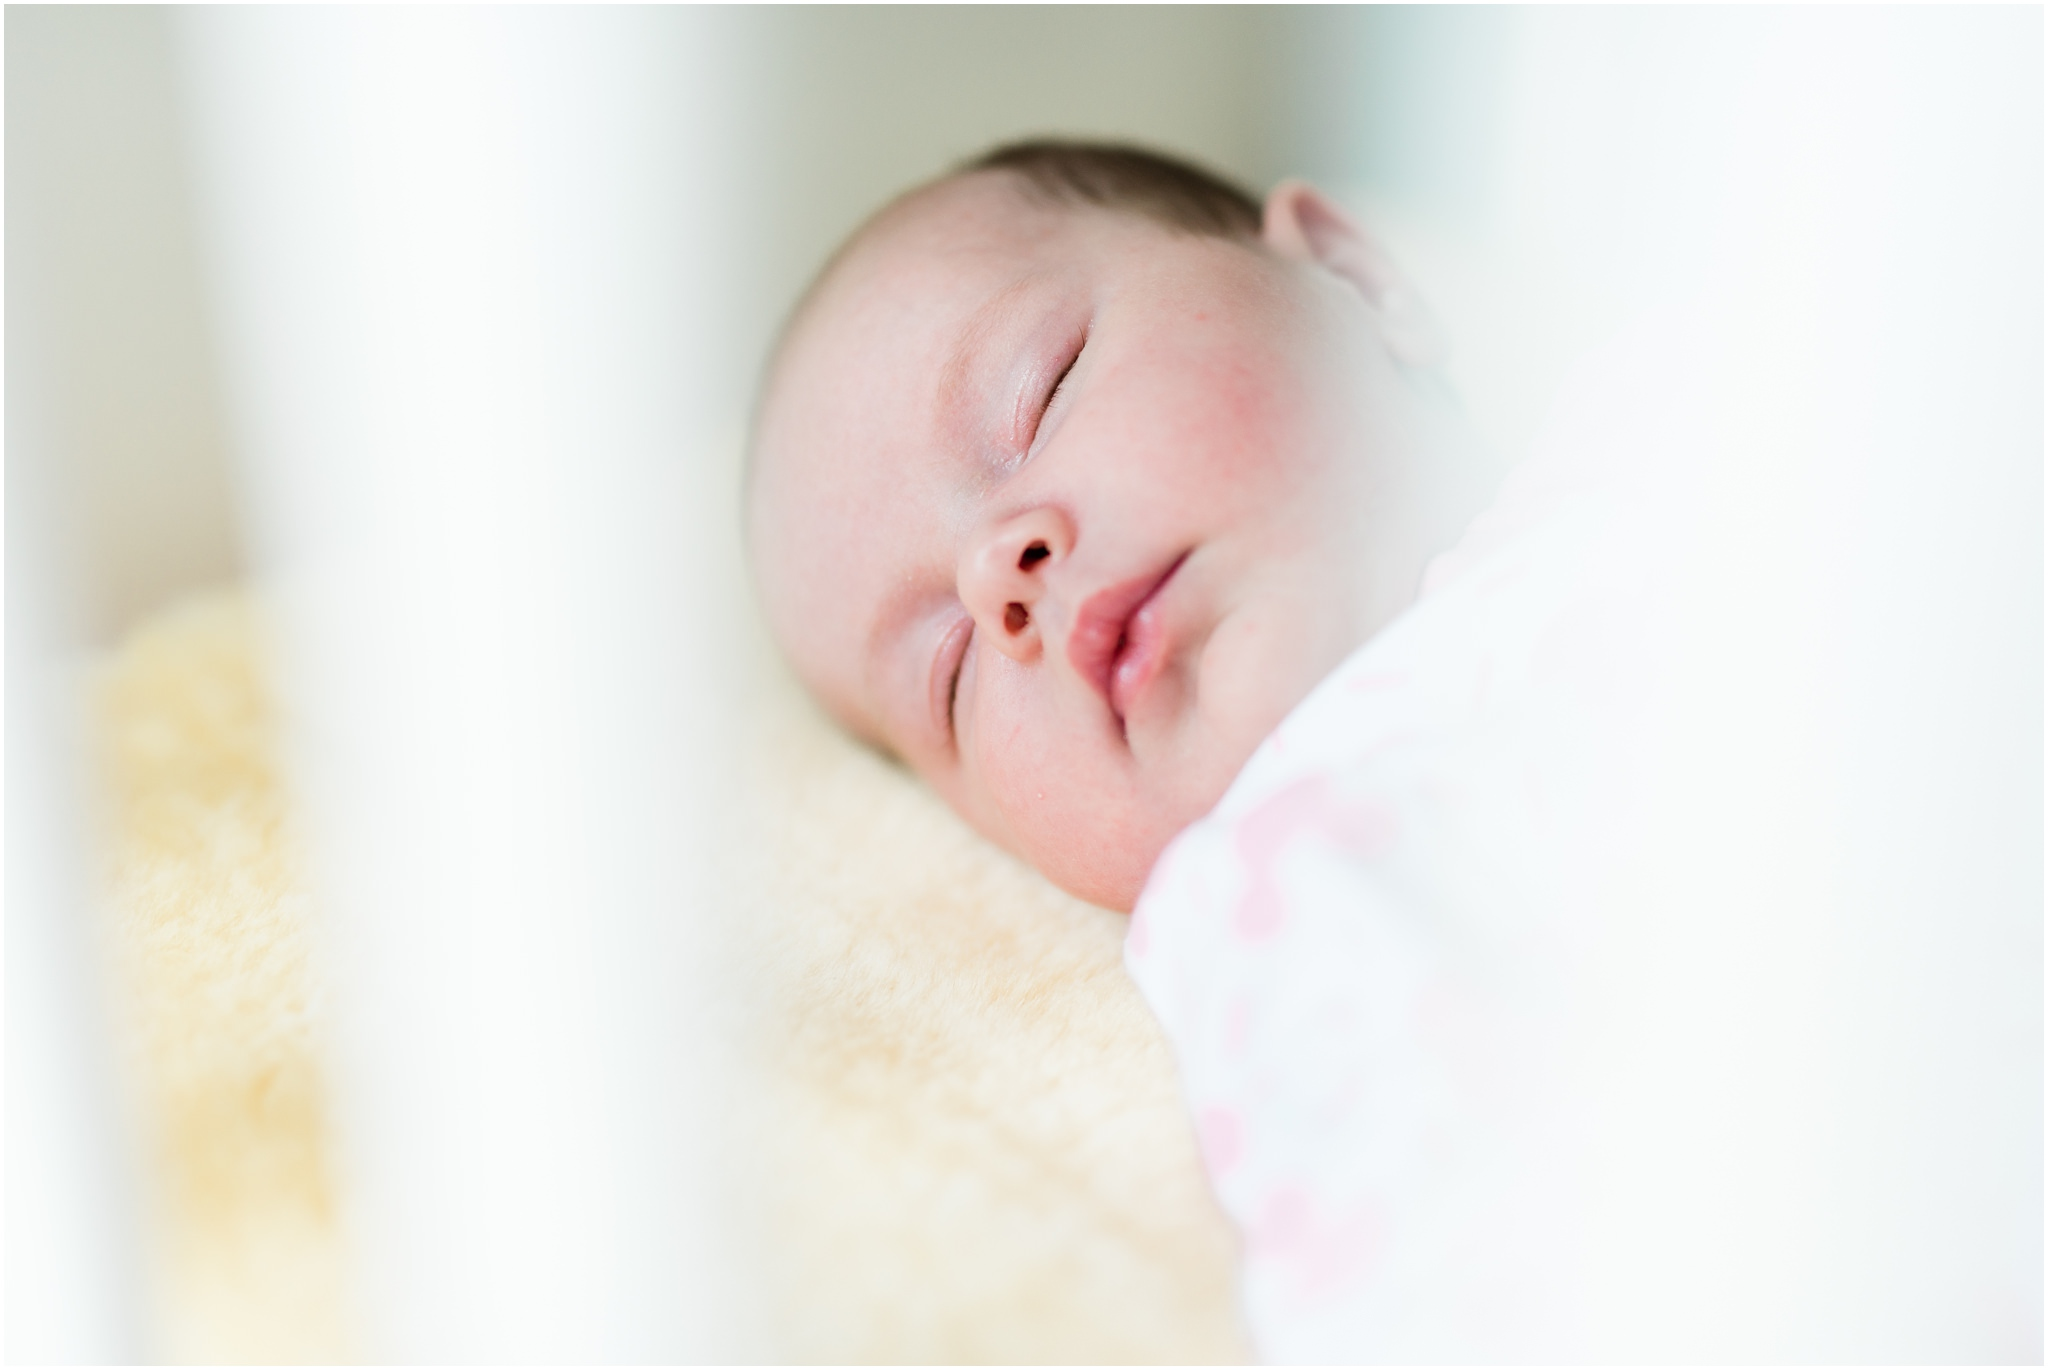 newborn-family-photography-lifestyle-home-baby13.jpg